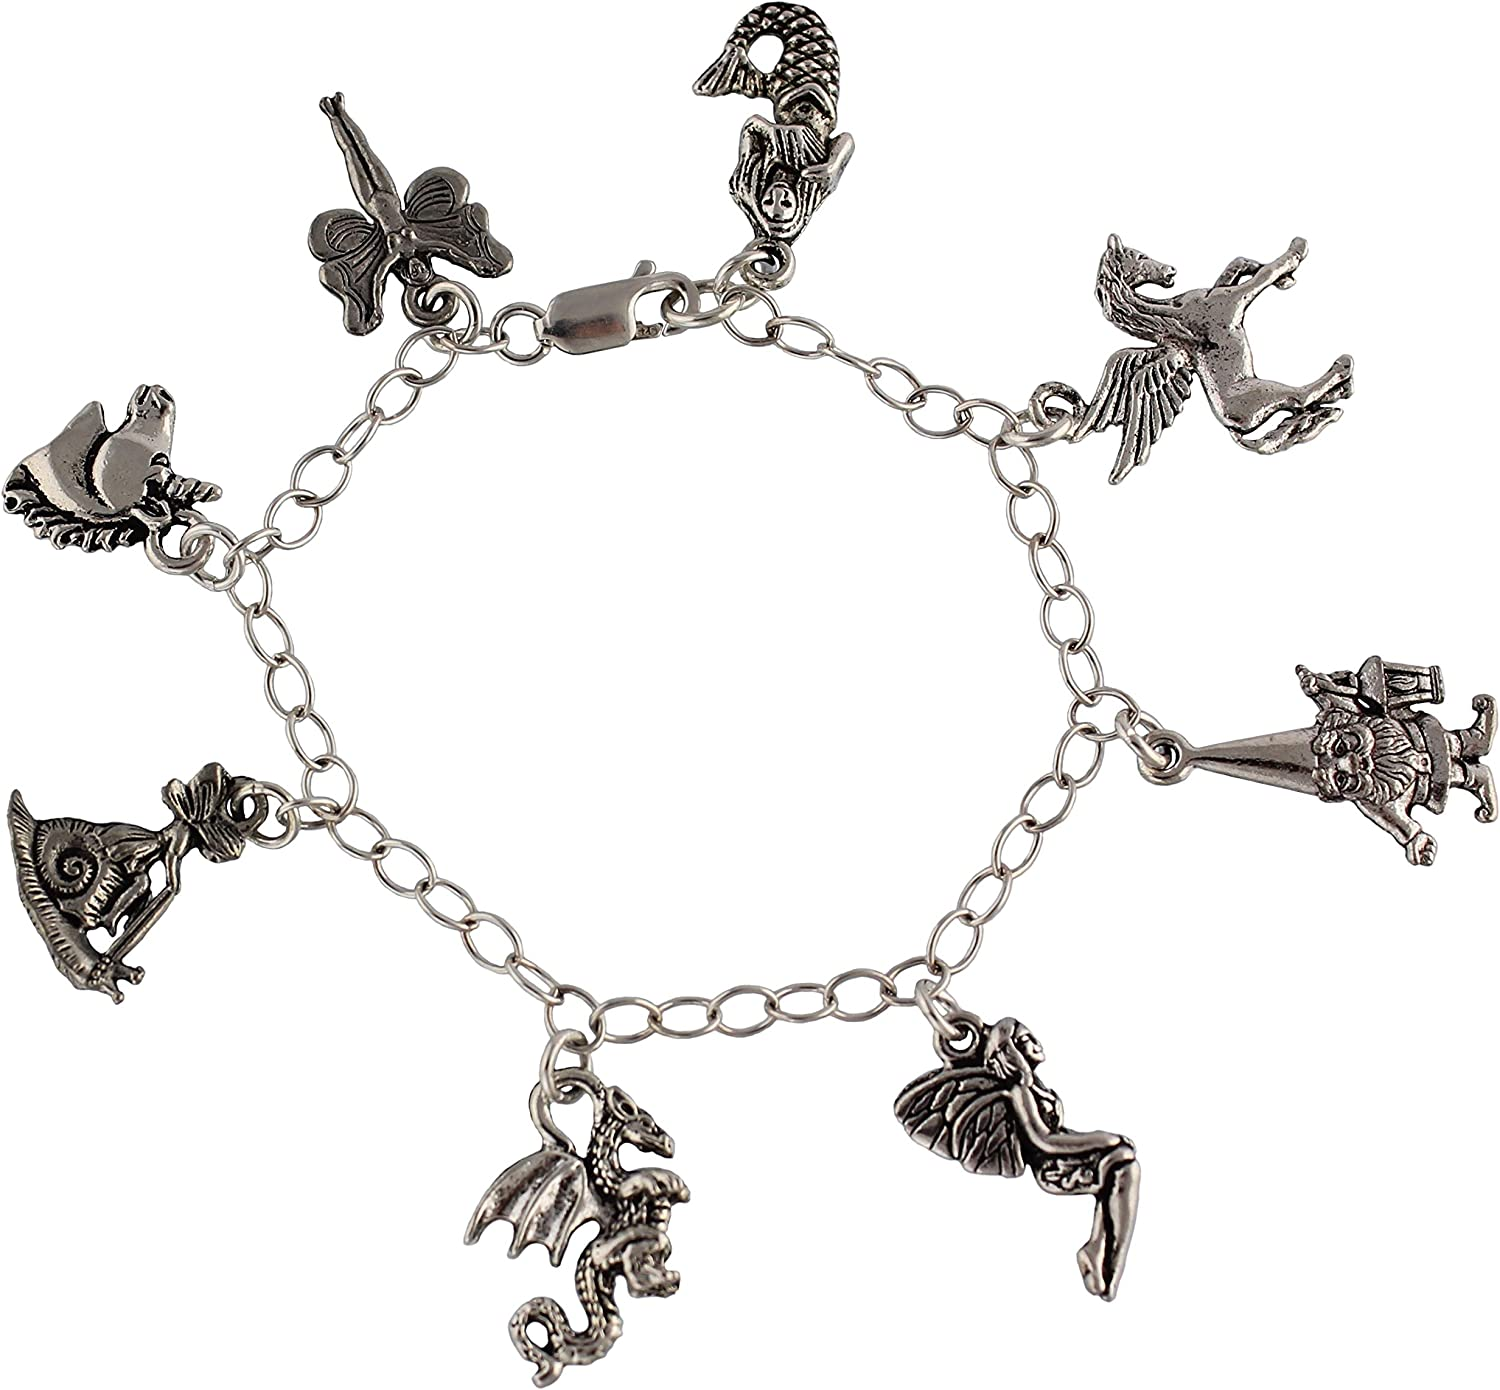 Charms for Bracelets and Necklaces Owl Charm With Lobster Claw Clasp